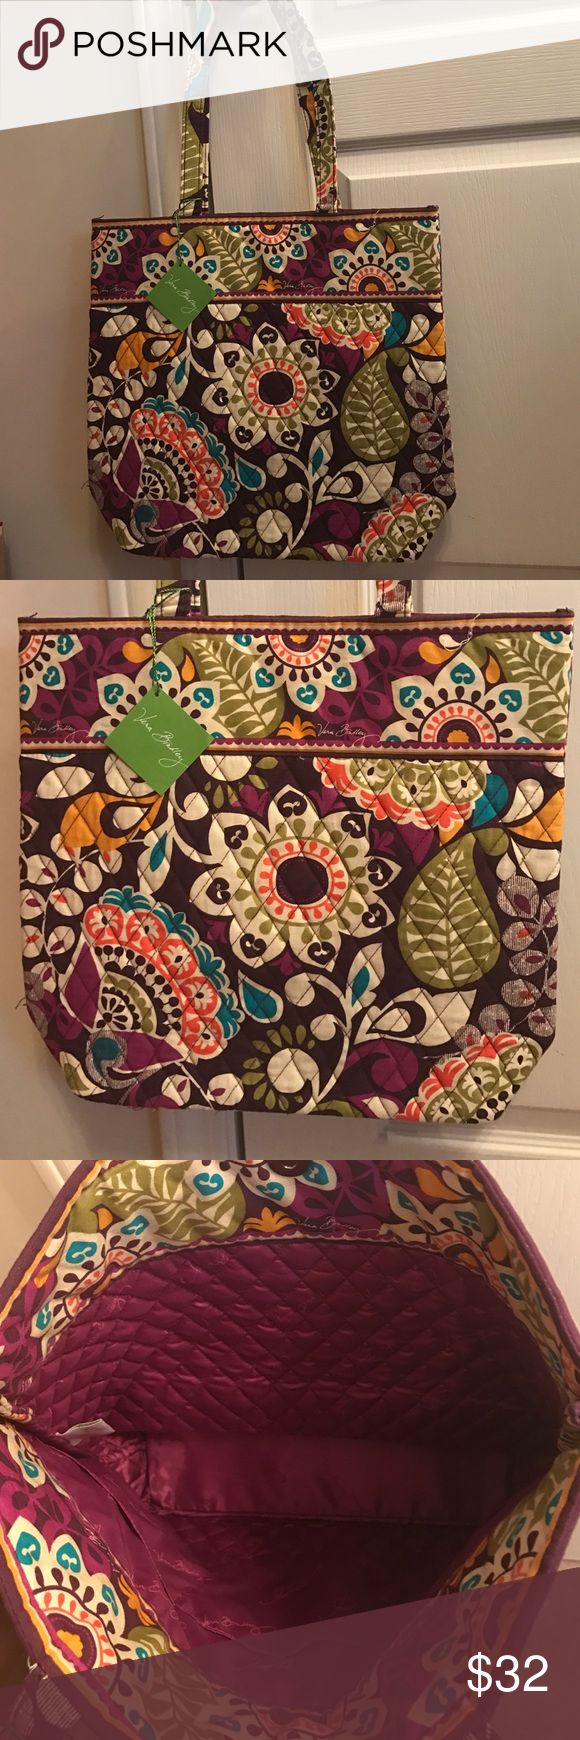 NWT Vera Bradley tote bag in plum crazy NWT Vera Bradley tote bag in plum crazy Vera Bradley Bags Totes